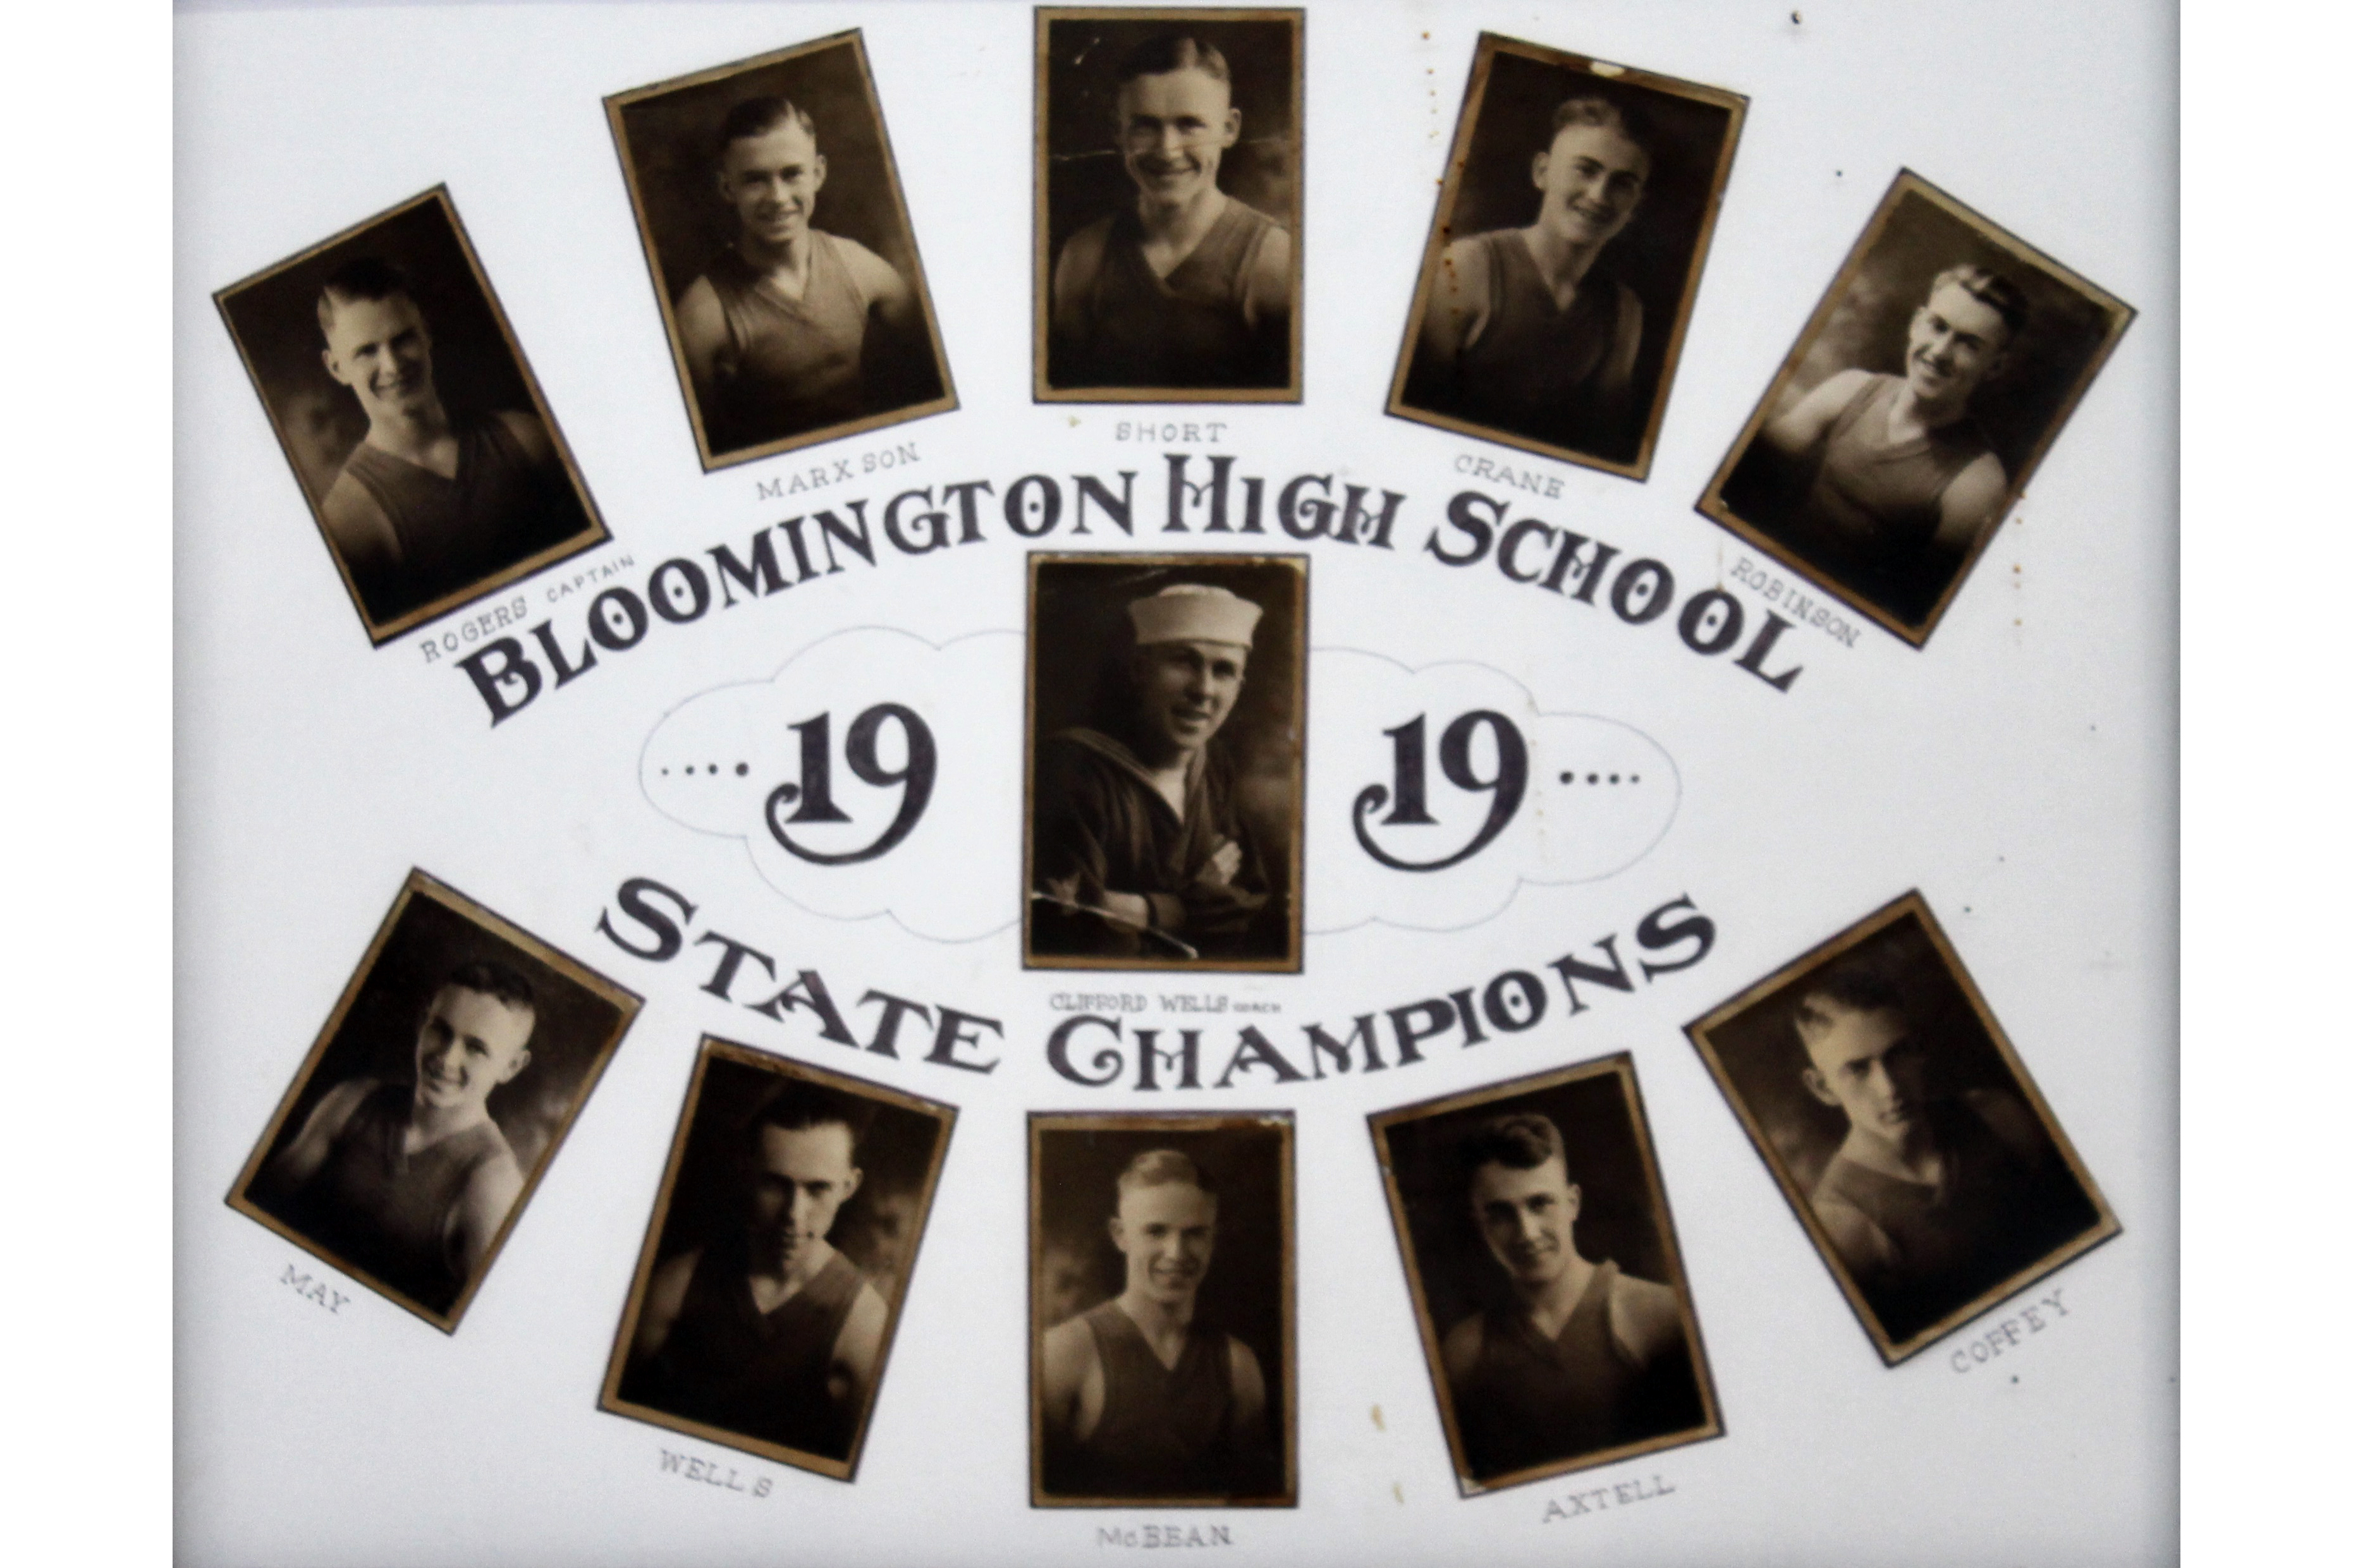 Bloomington High School 1919 Basketball State Champs